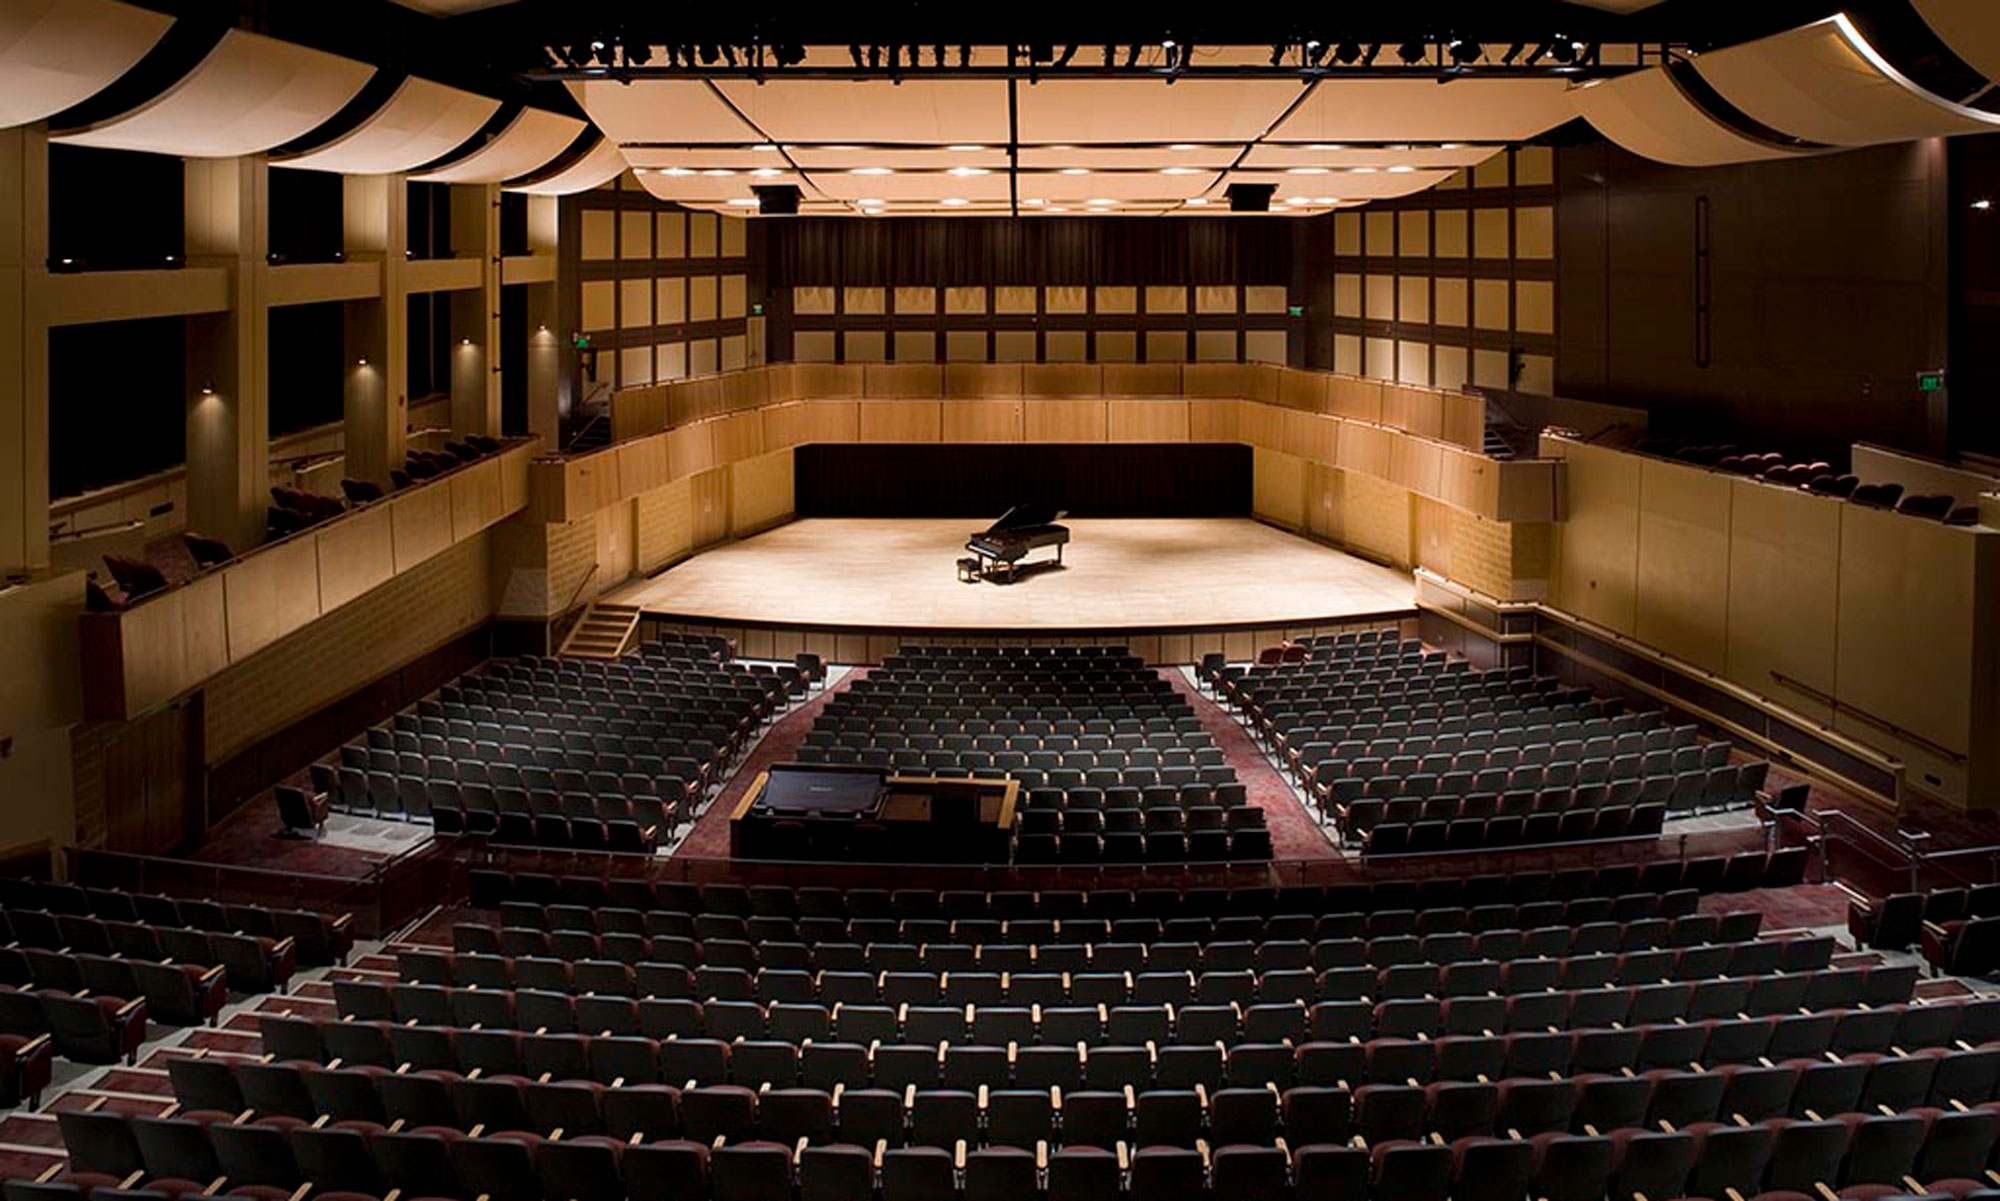 Rhinehart Music Center Interior